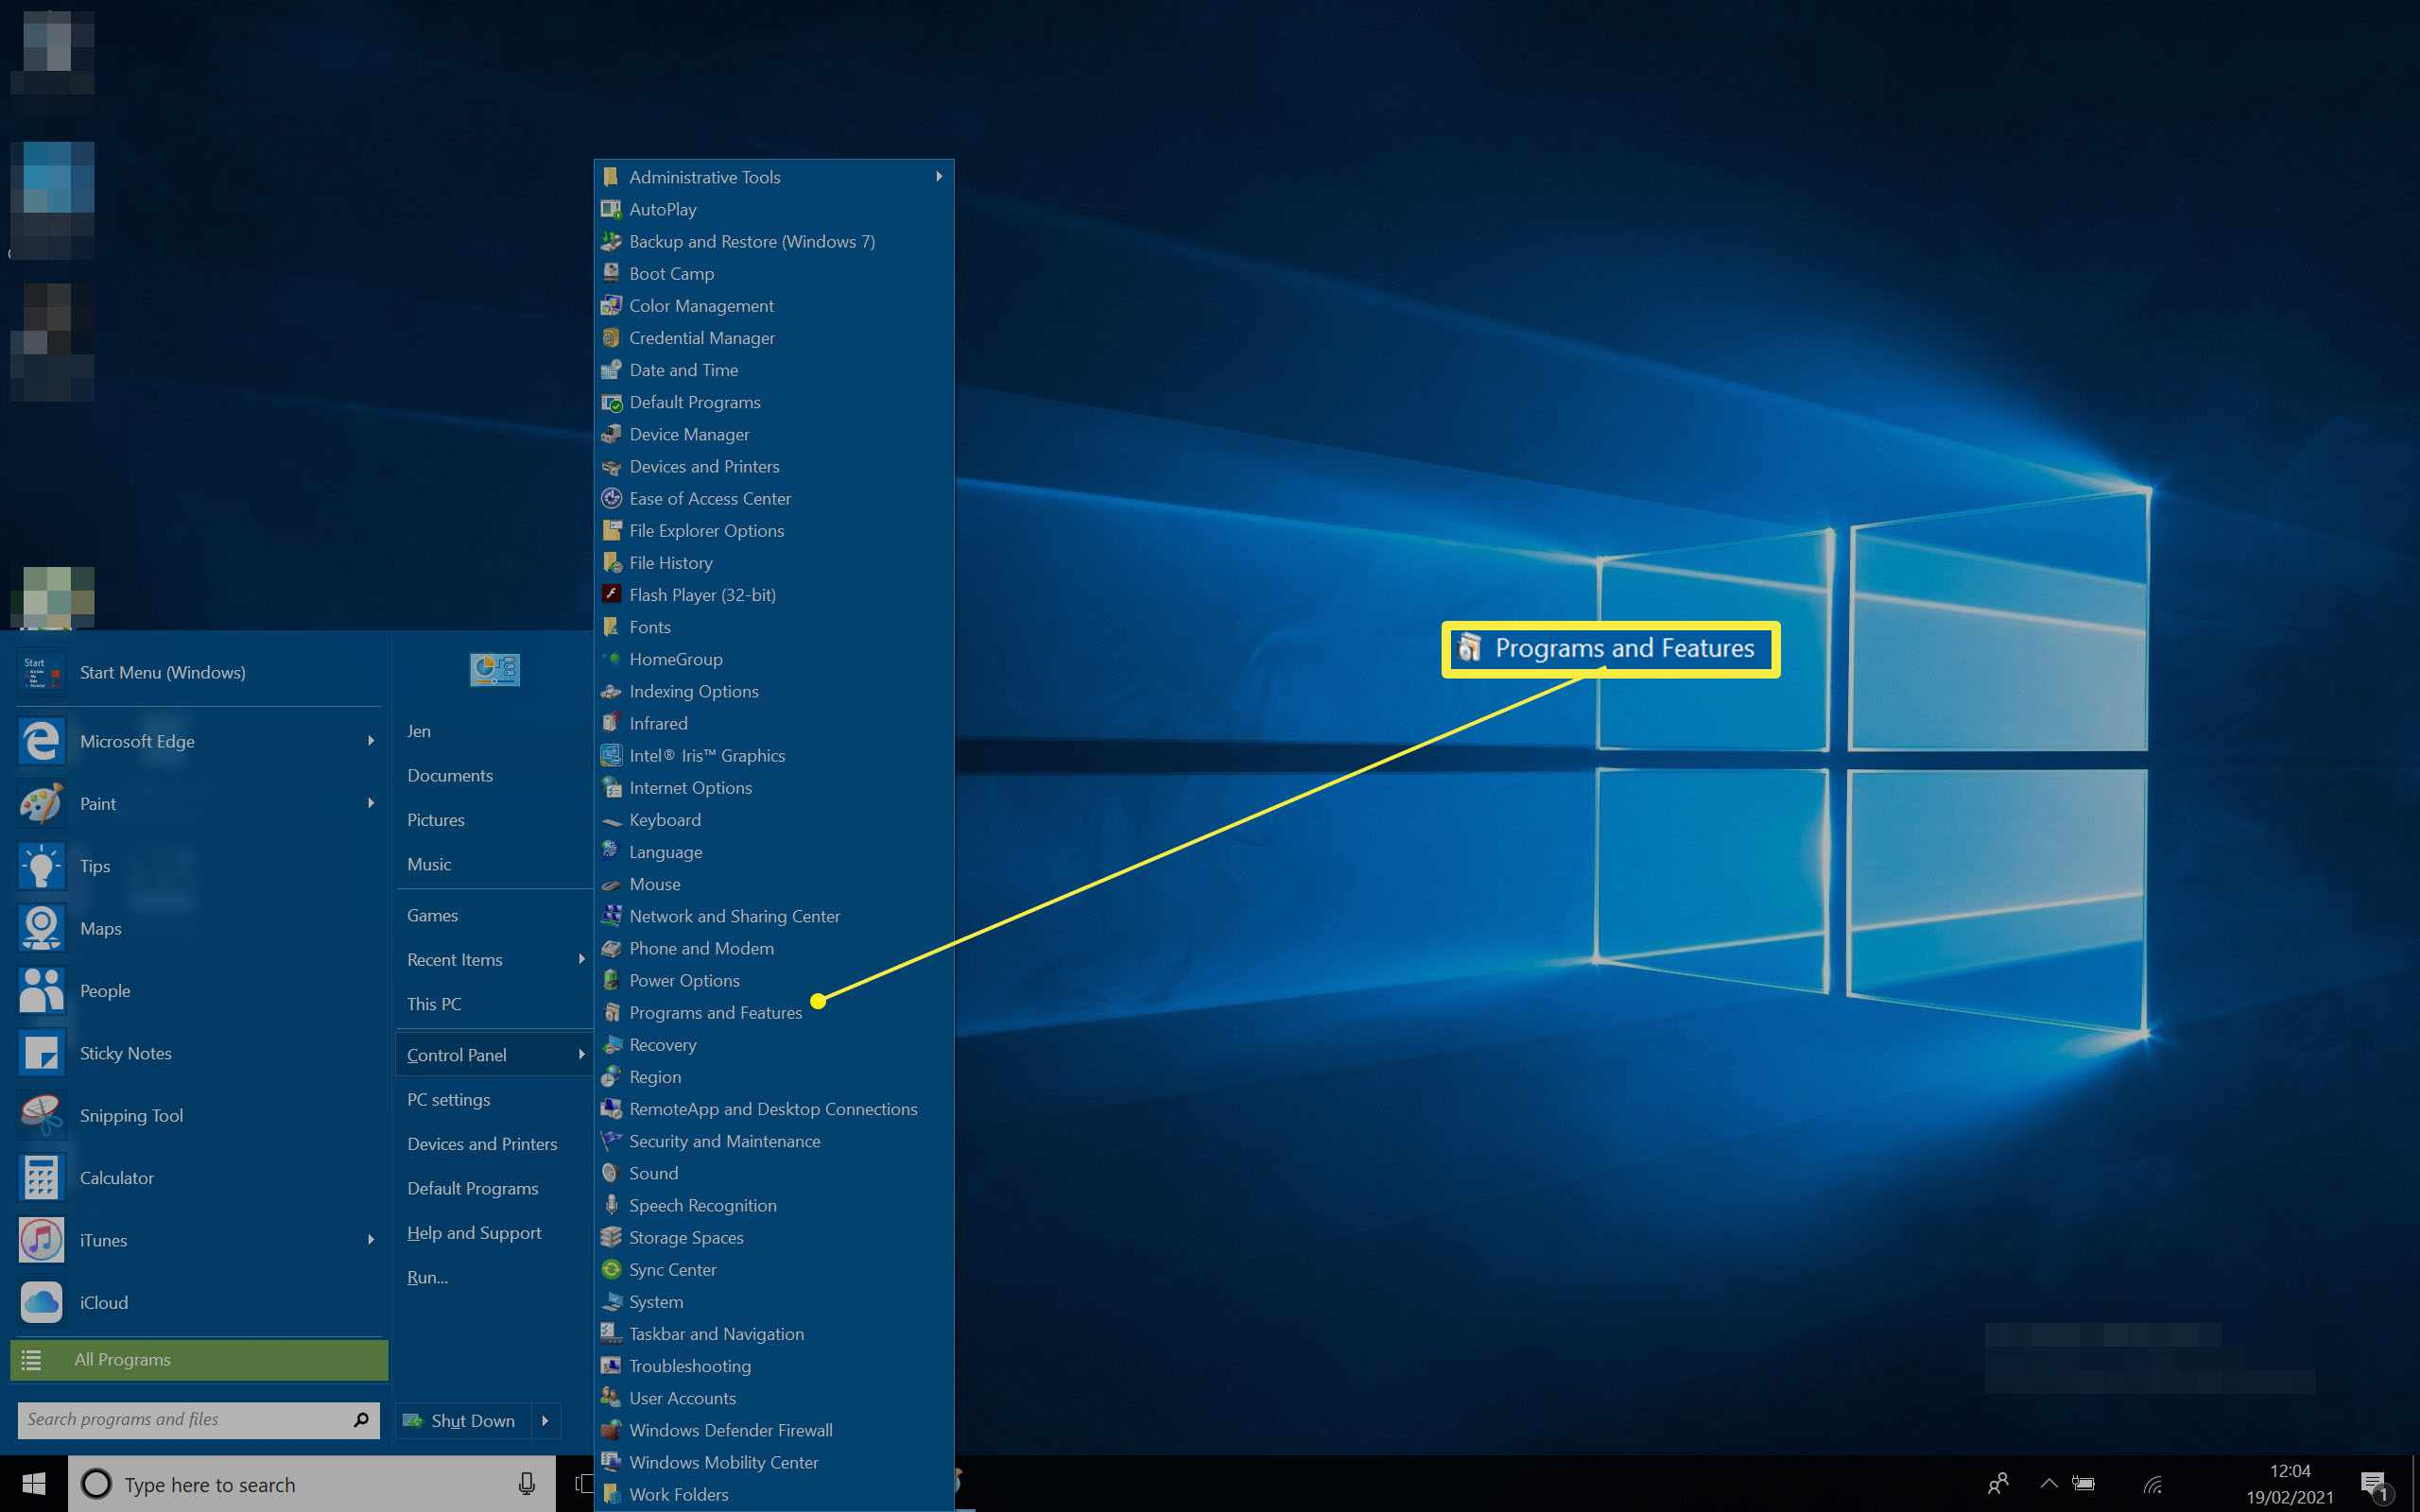 Windows 10 Desktop with Start Menu open and Control Panel options listed with programs and features highlighted